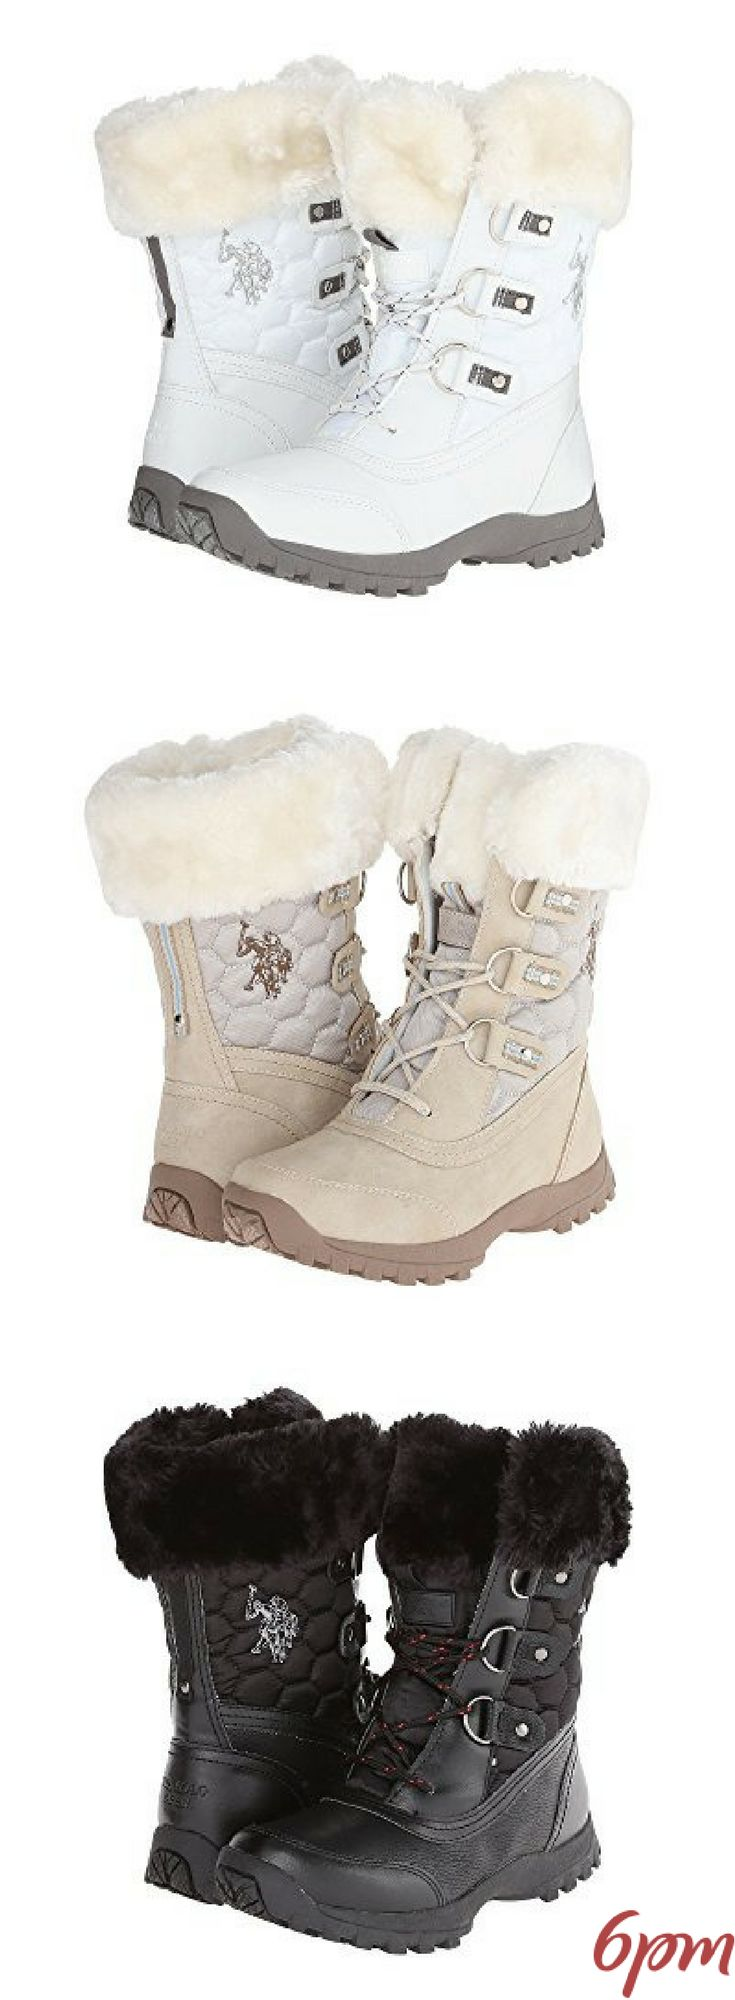 U.S. POLO ASSN. Artic Boots #winterboots #articboots #snowboots #cuteboots #stylishboots #whiteboots #boots #white #snow #affiliate